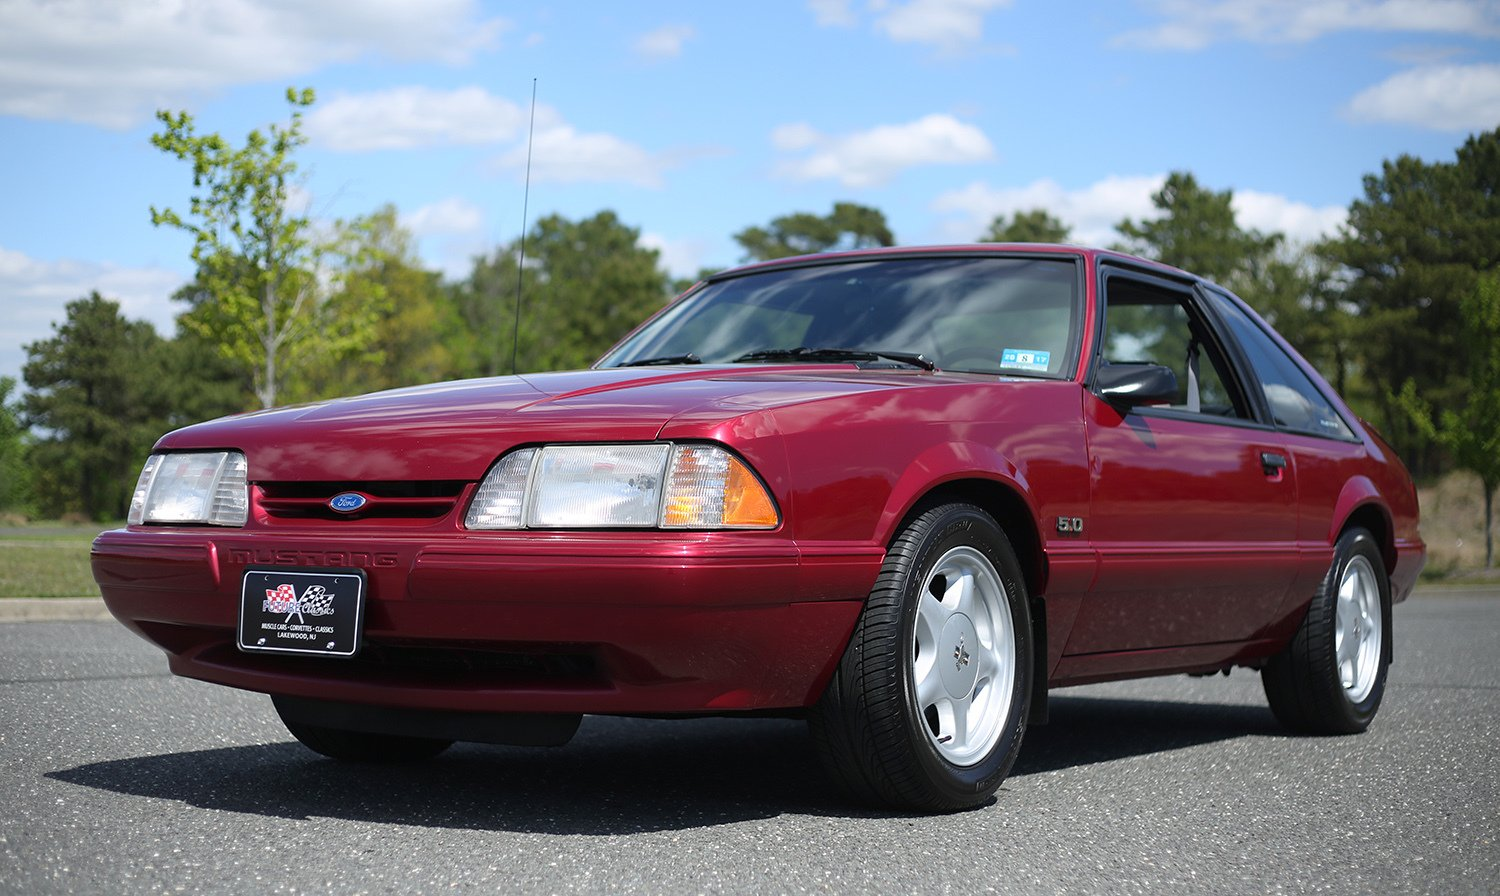 1993 ford mustang lx for sale 52397 mcg